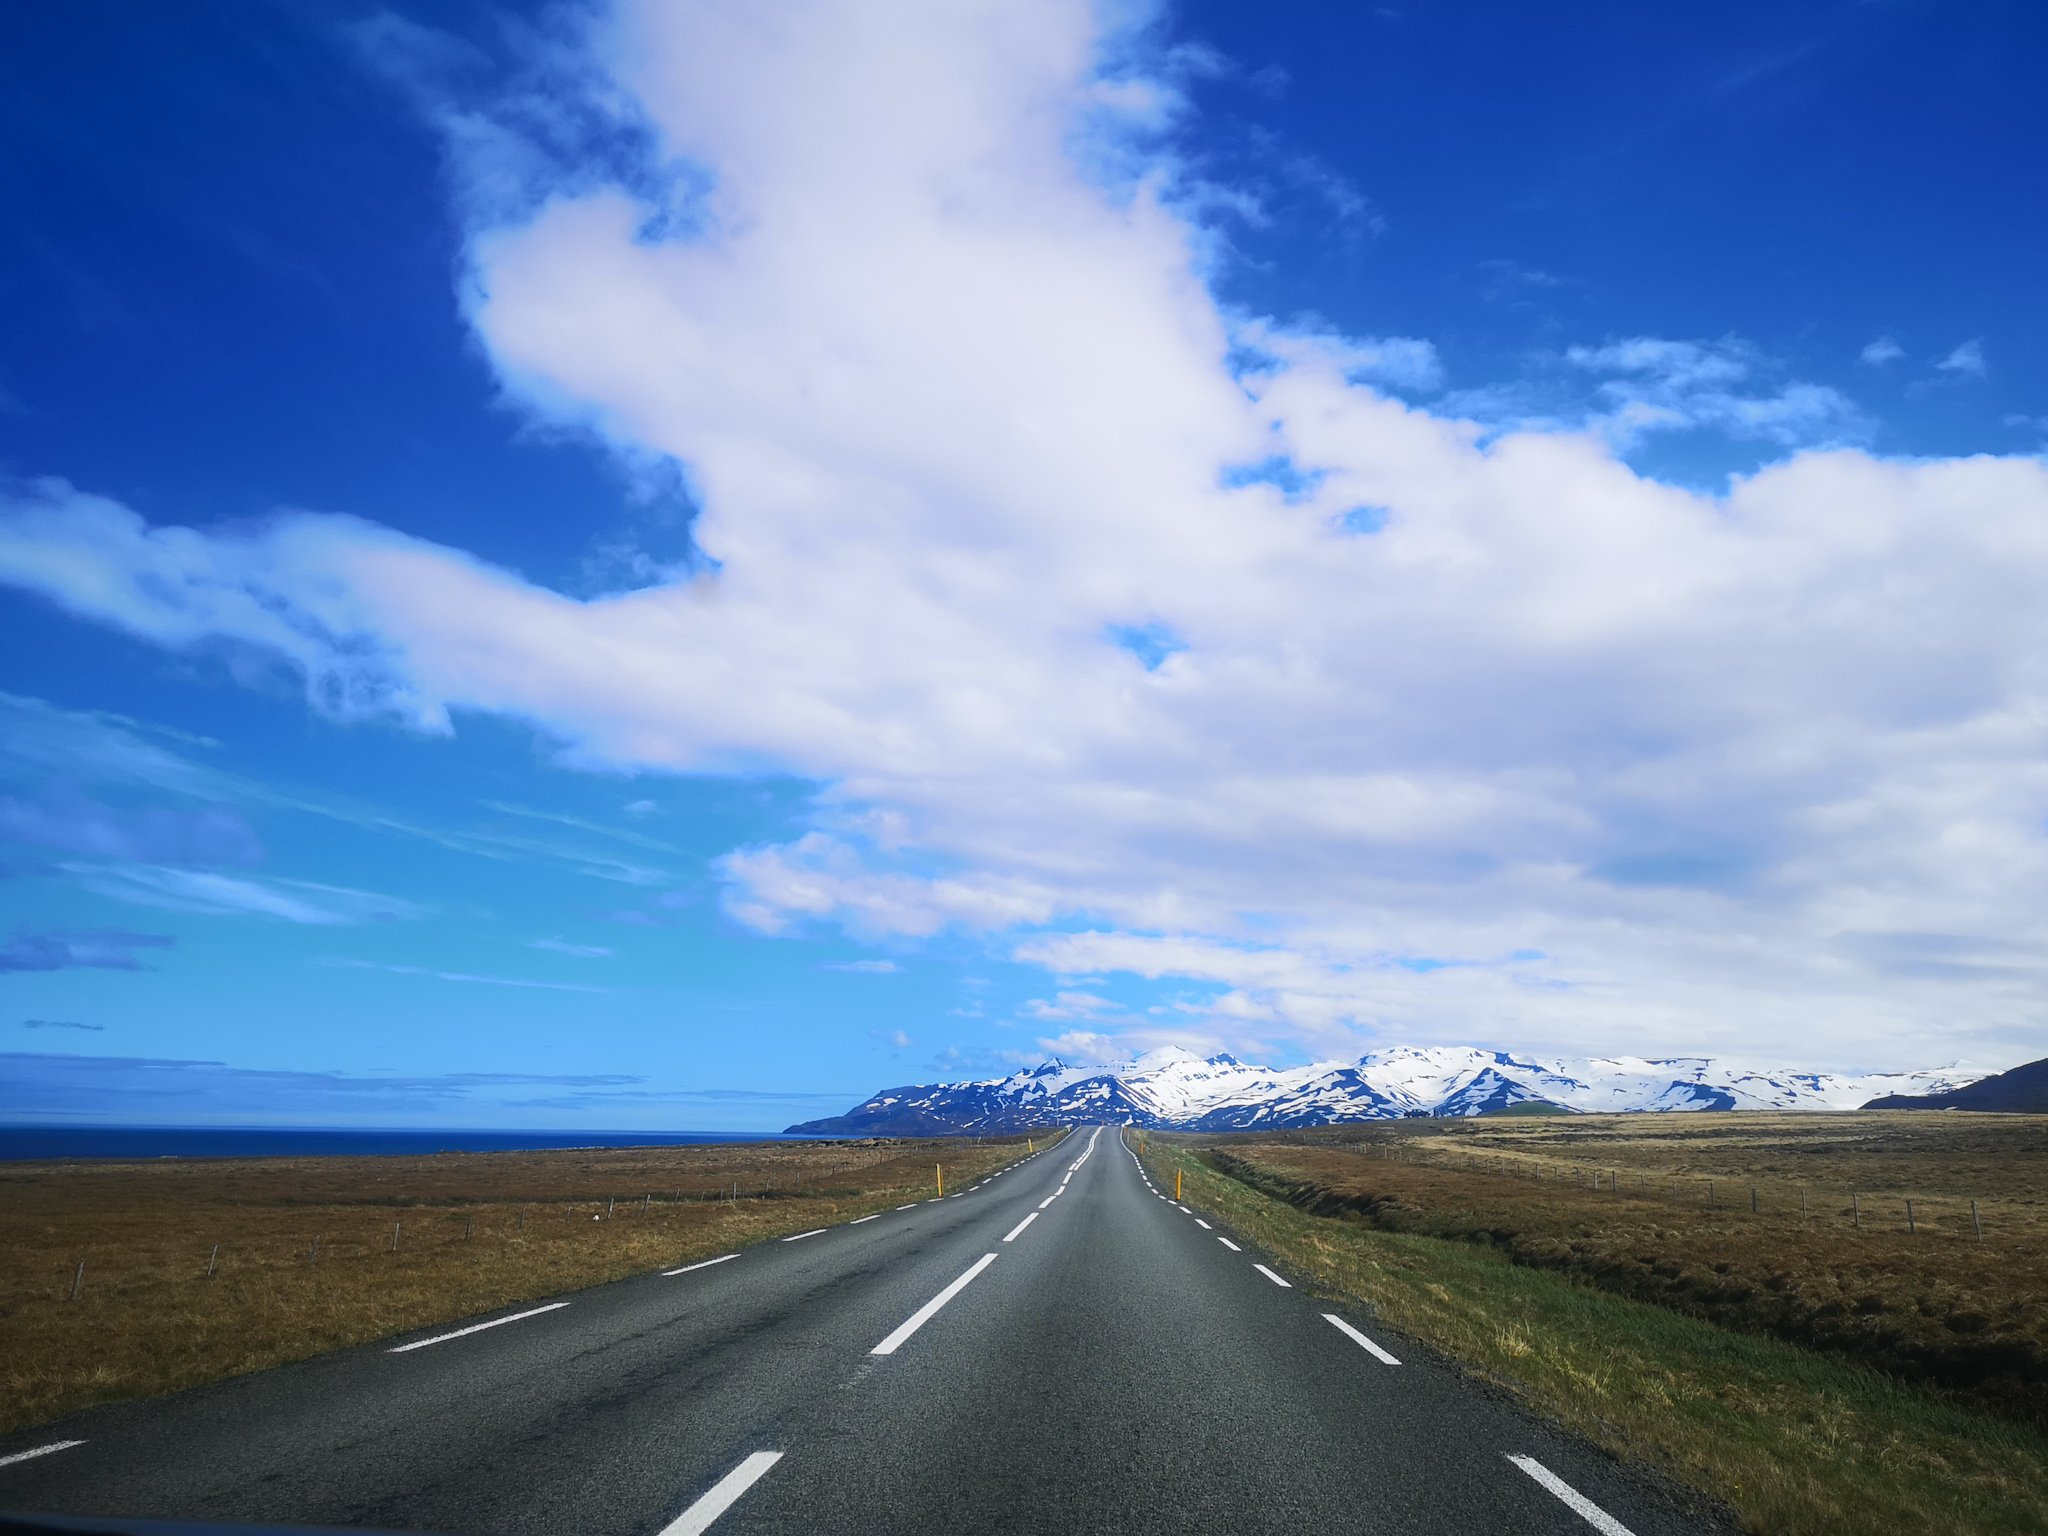 Road in North Iceland with blue sky and mountains in the distance.